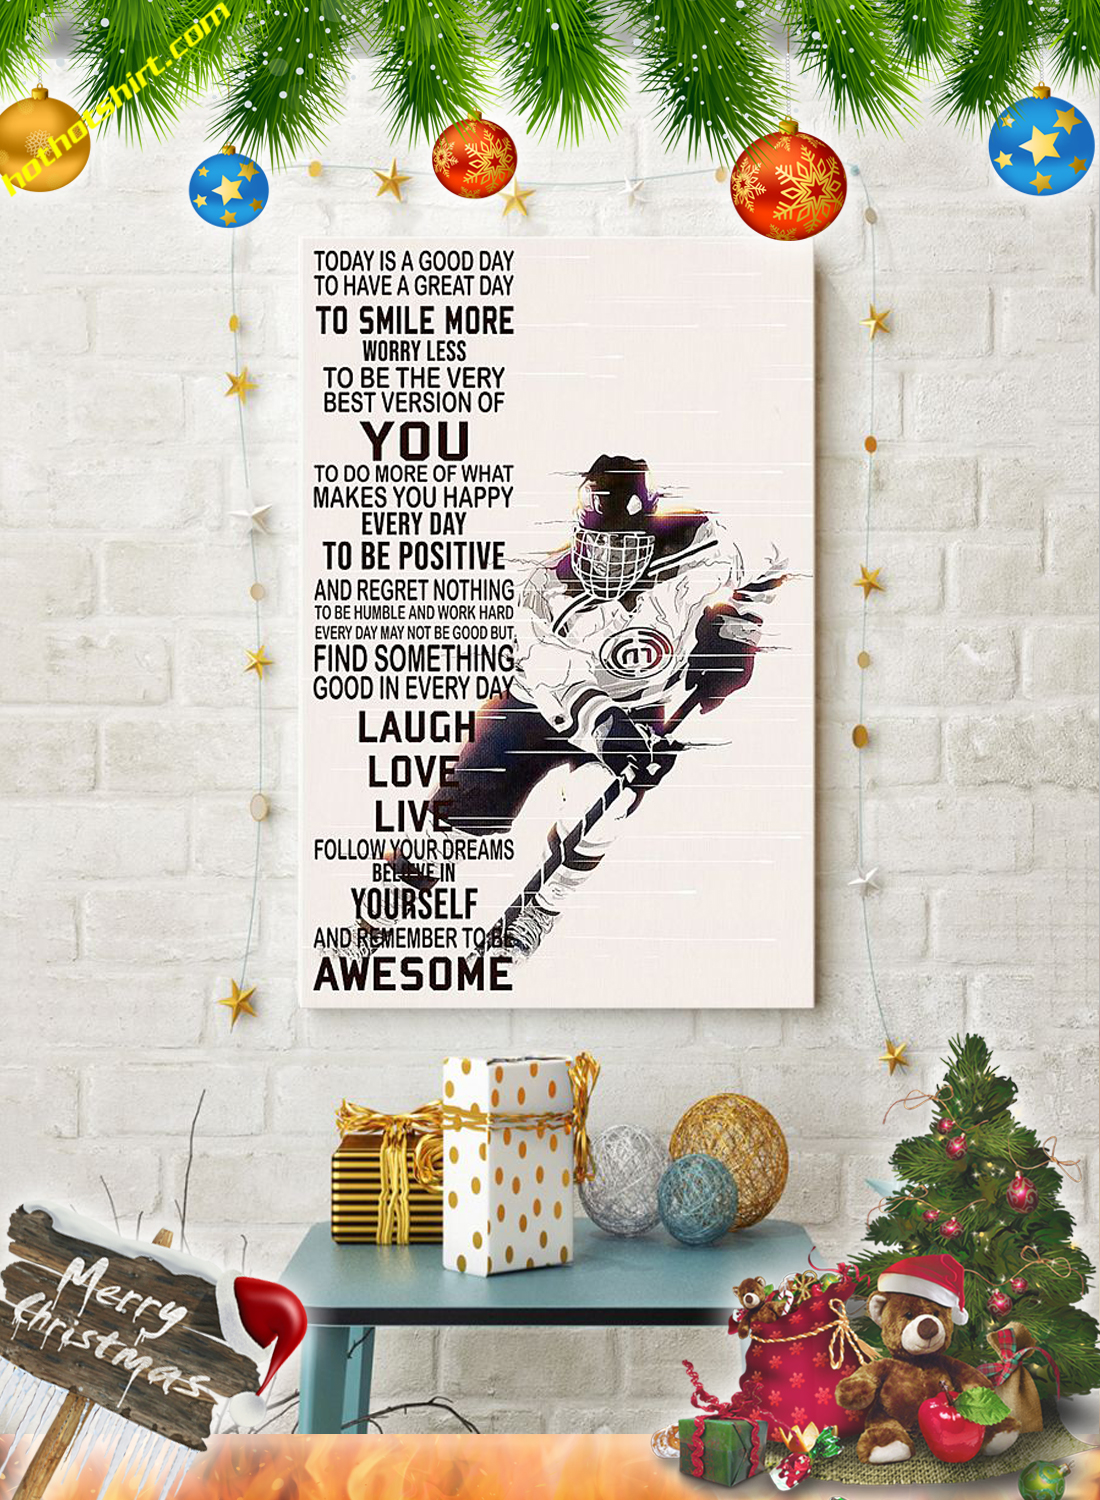 Hockey Today is a good day poster 3